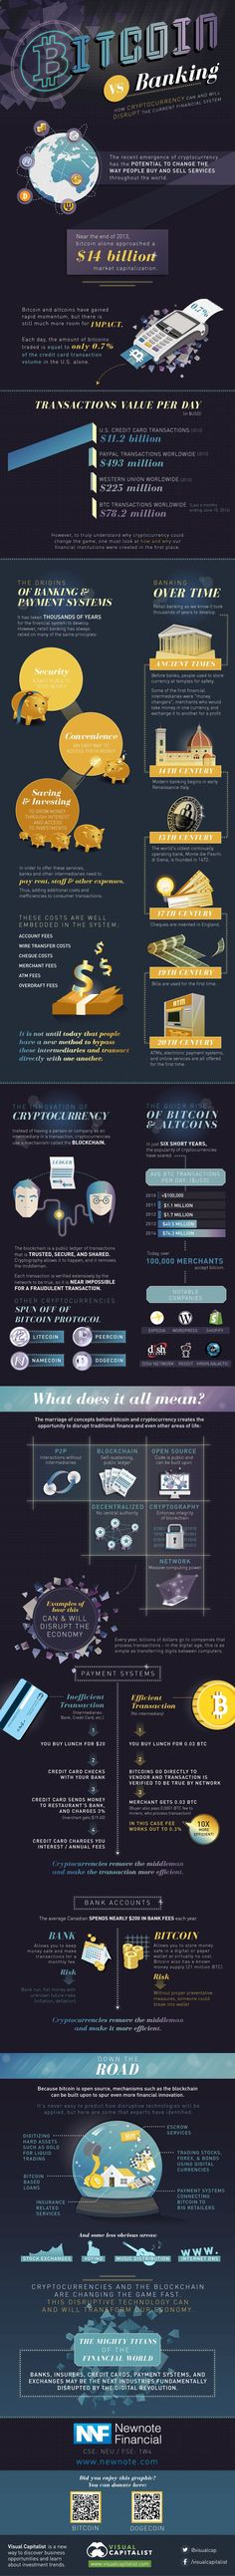 iStats: ••BitCoin vs Banking•• infographic: disrupting the financial system • by 2013 BitCoin is $14B market att $78.2M/transactions/day vs $225M Western Union vs $493M PayPal vs $11.2B credit cards... • infographic by NewNote.com {bitcoin earn|bitcoin mining|bitcoin trading!bitcoin platform}